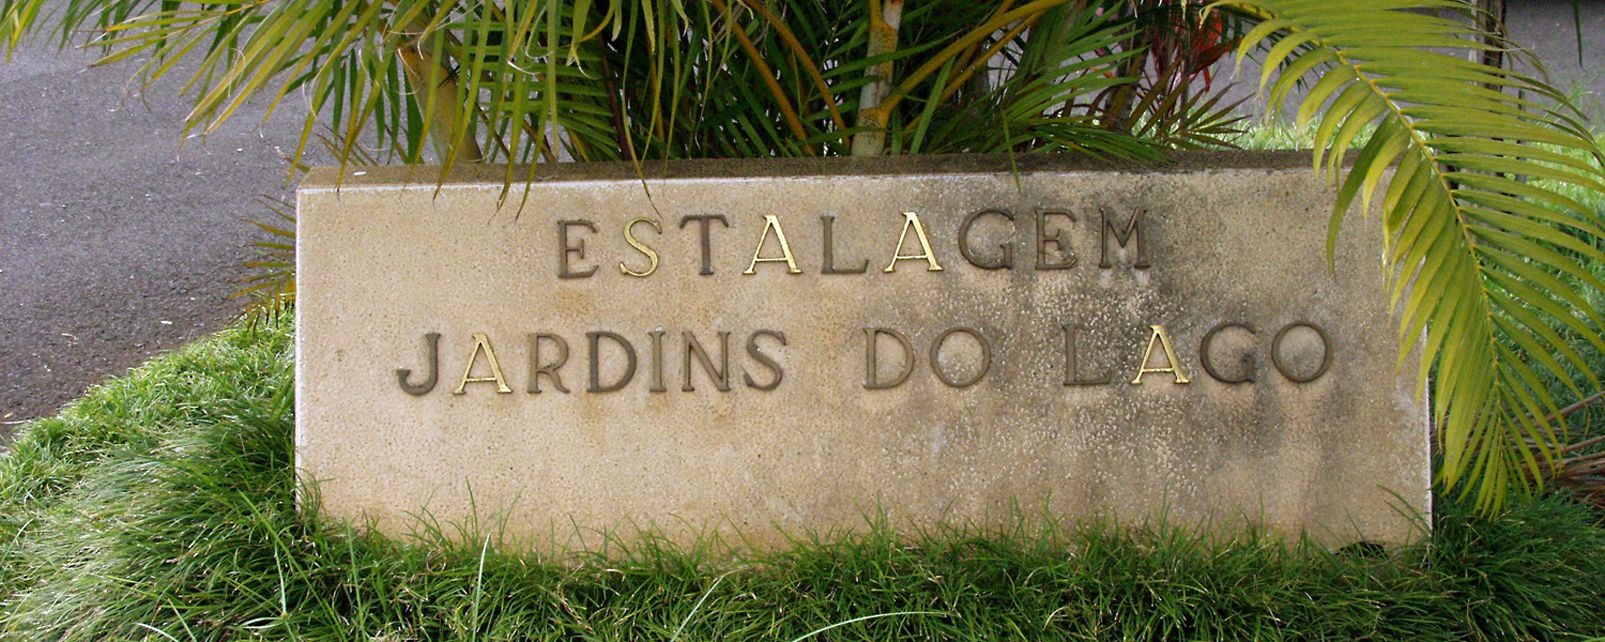 Hotel Jardins do Lago